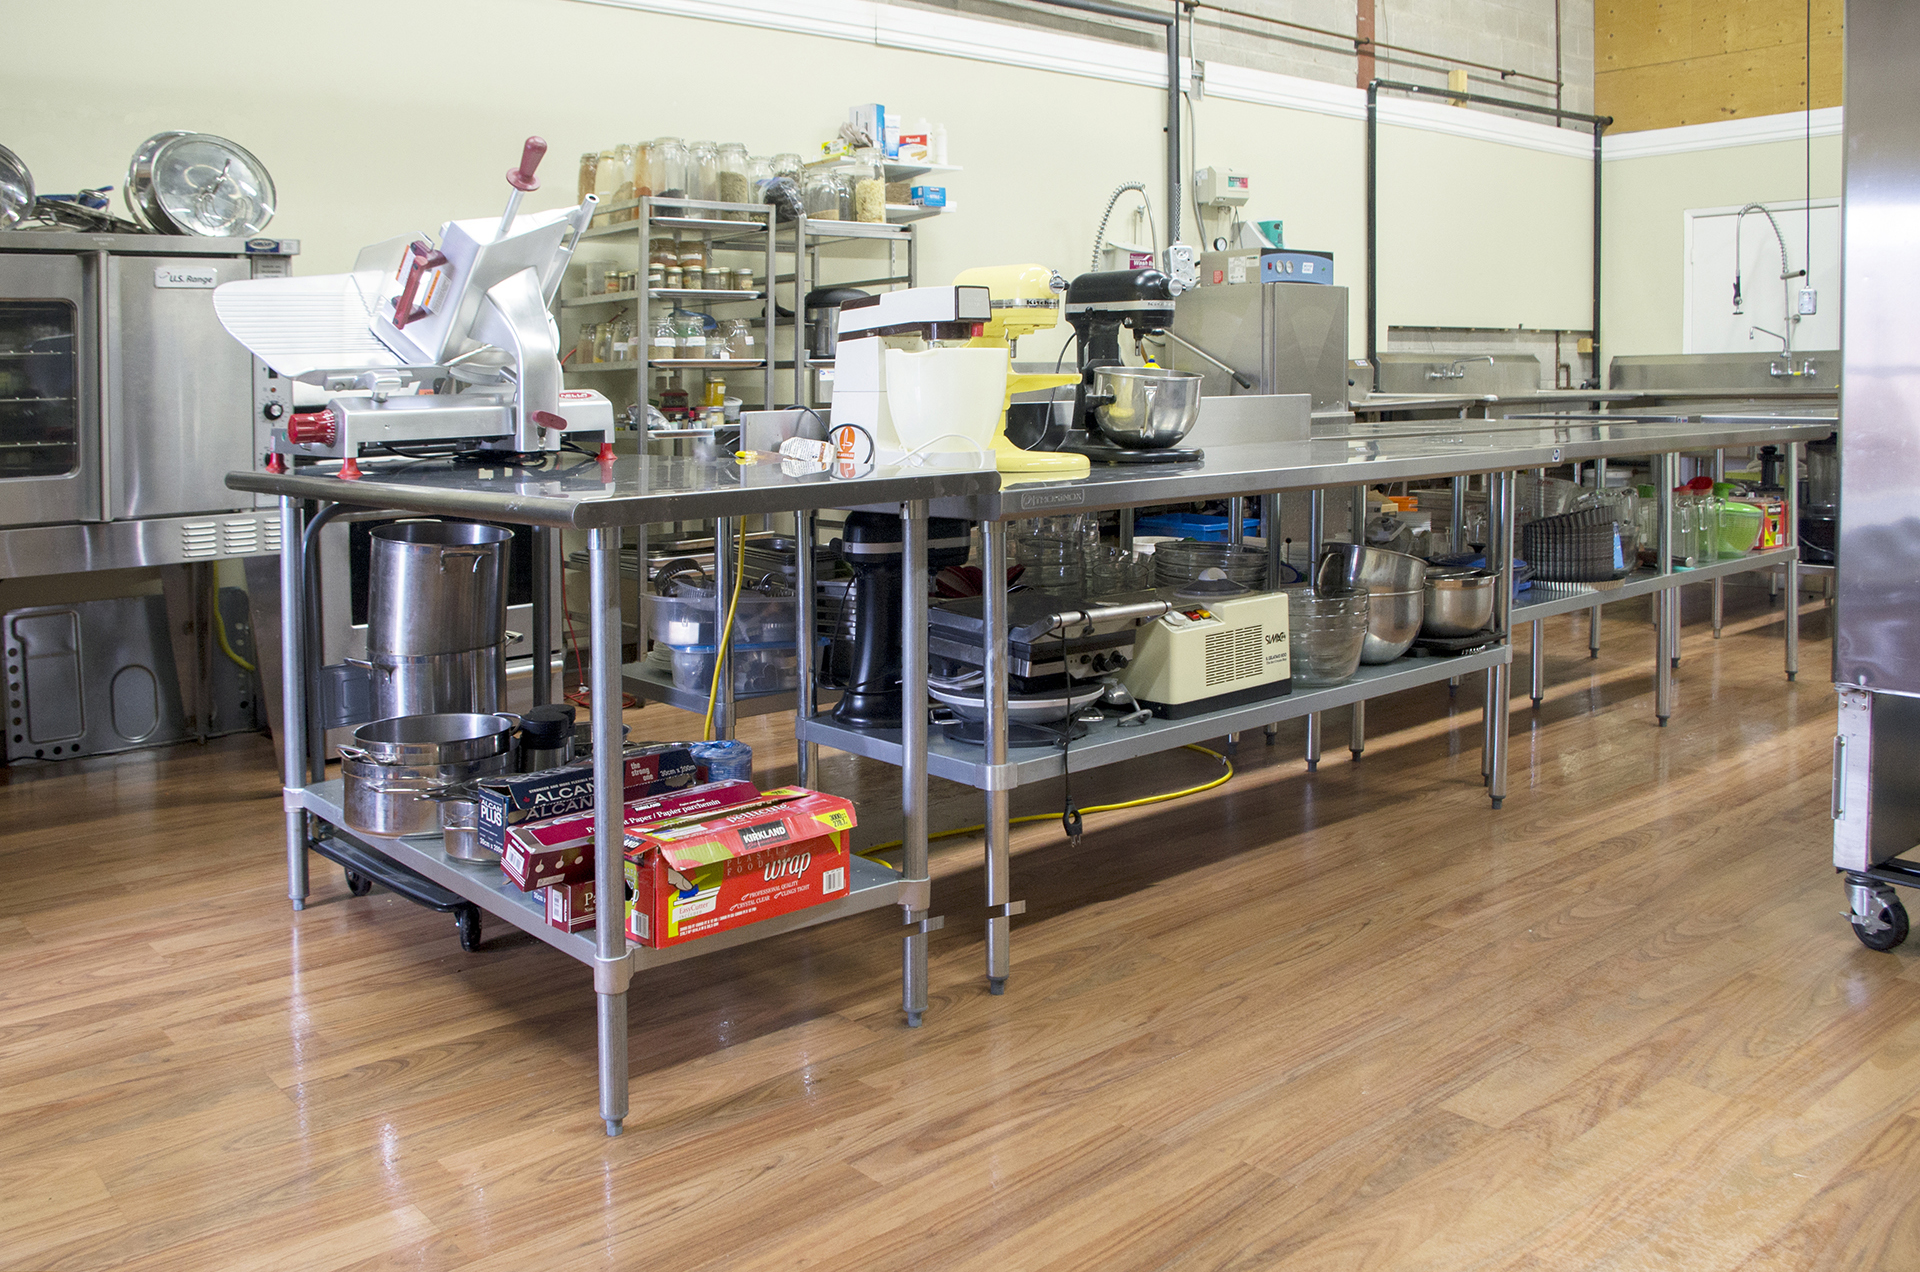 industrial kitchen cleaning services canisters cream hot kitchens to rent alimentary initiatives in good company oakville ontario